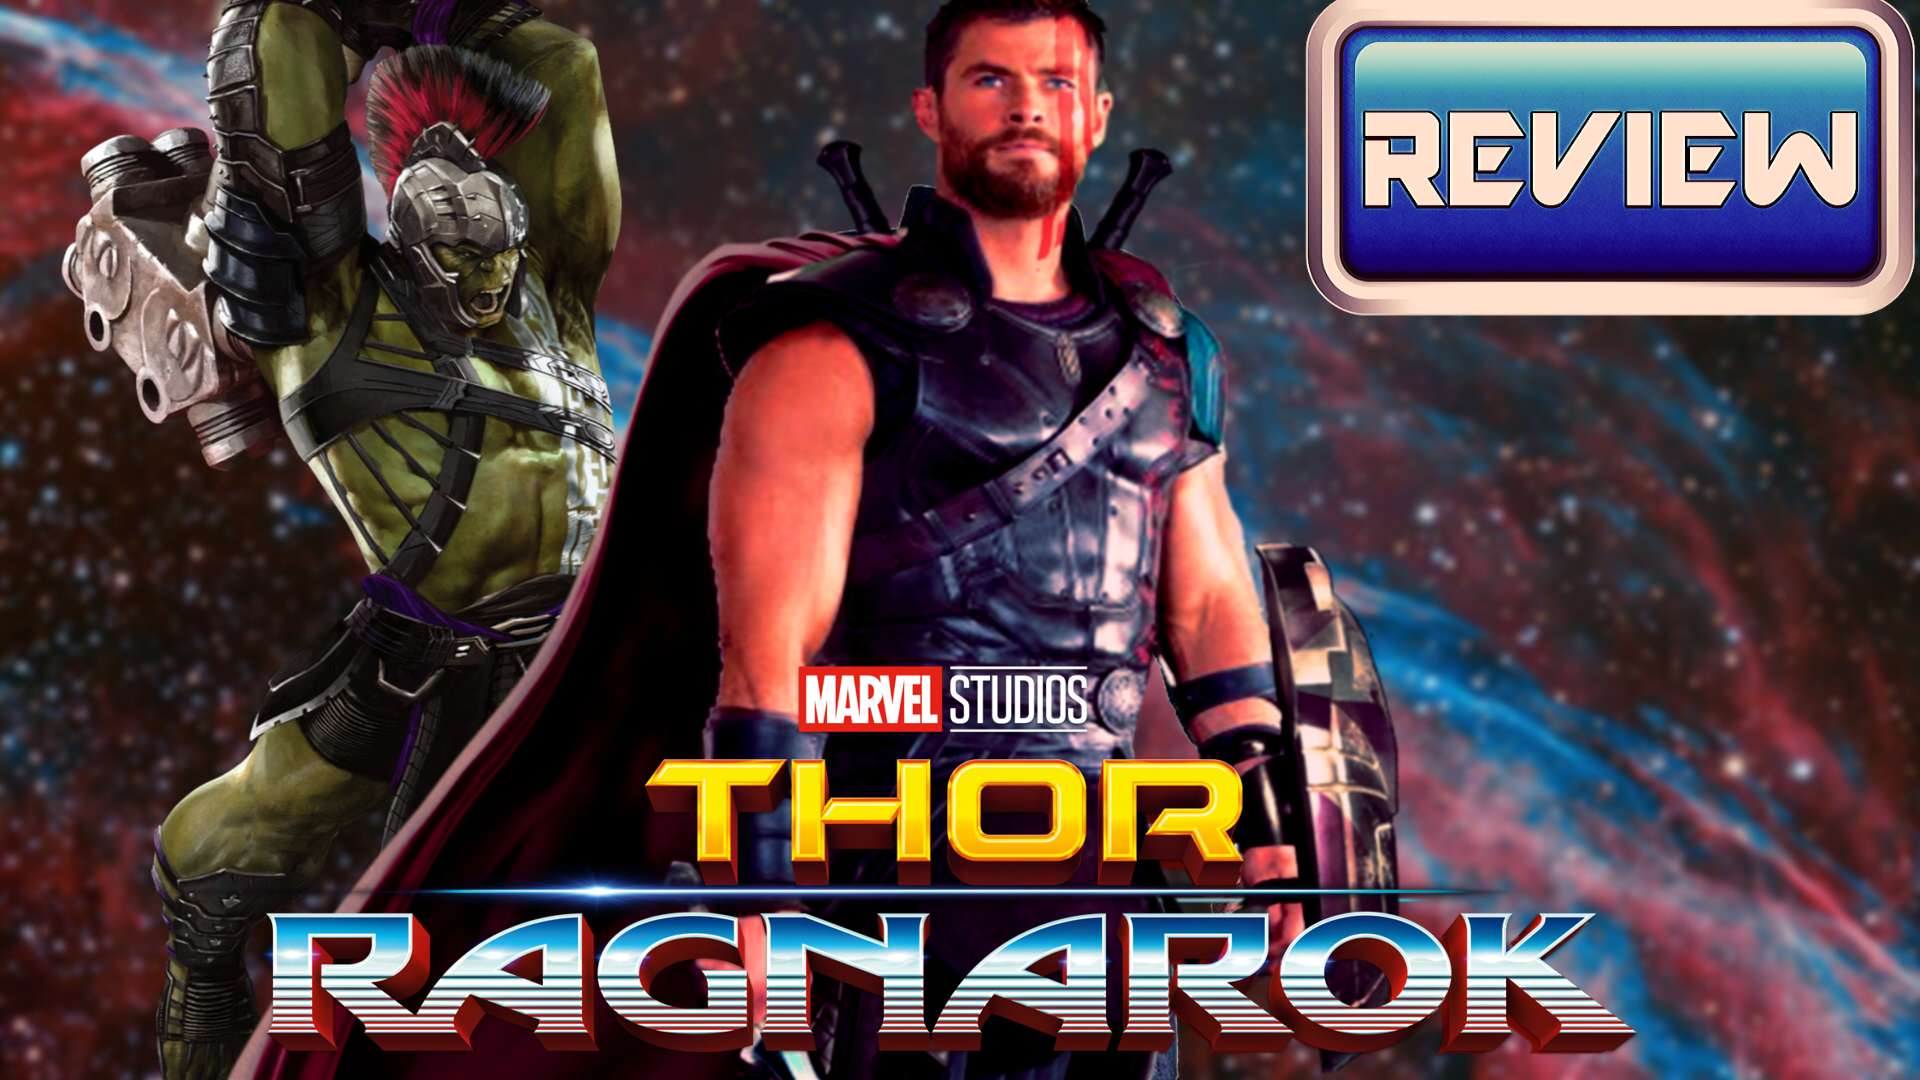 Thor Ragnarok 2017 Mini Review The Analytic Critic By Kyle Wiseman Marvel Cinematic Universe Reviews Medium